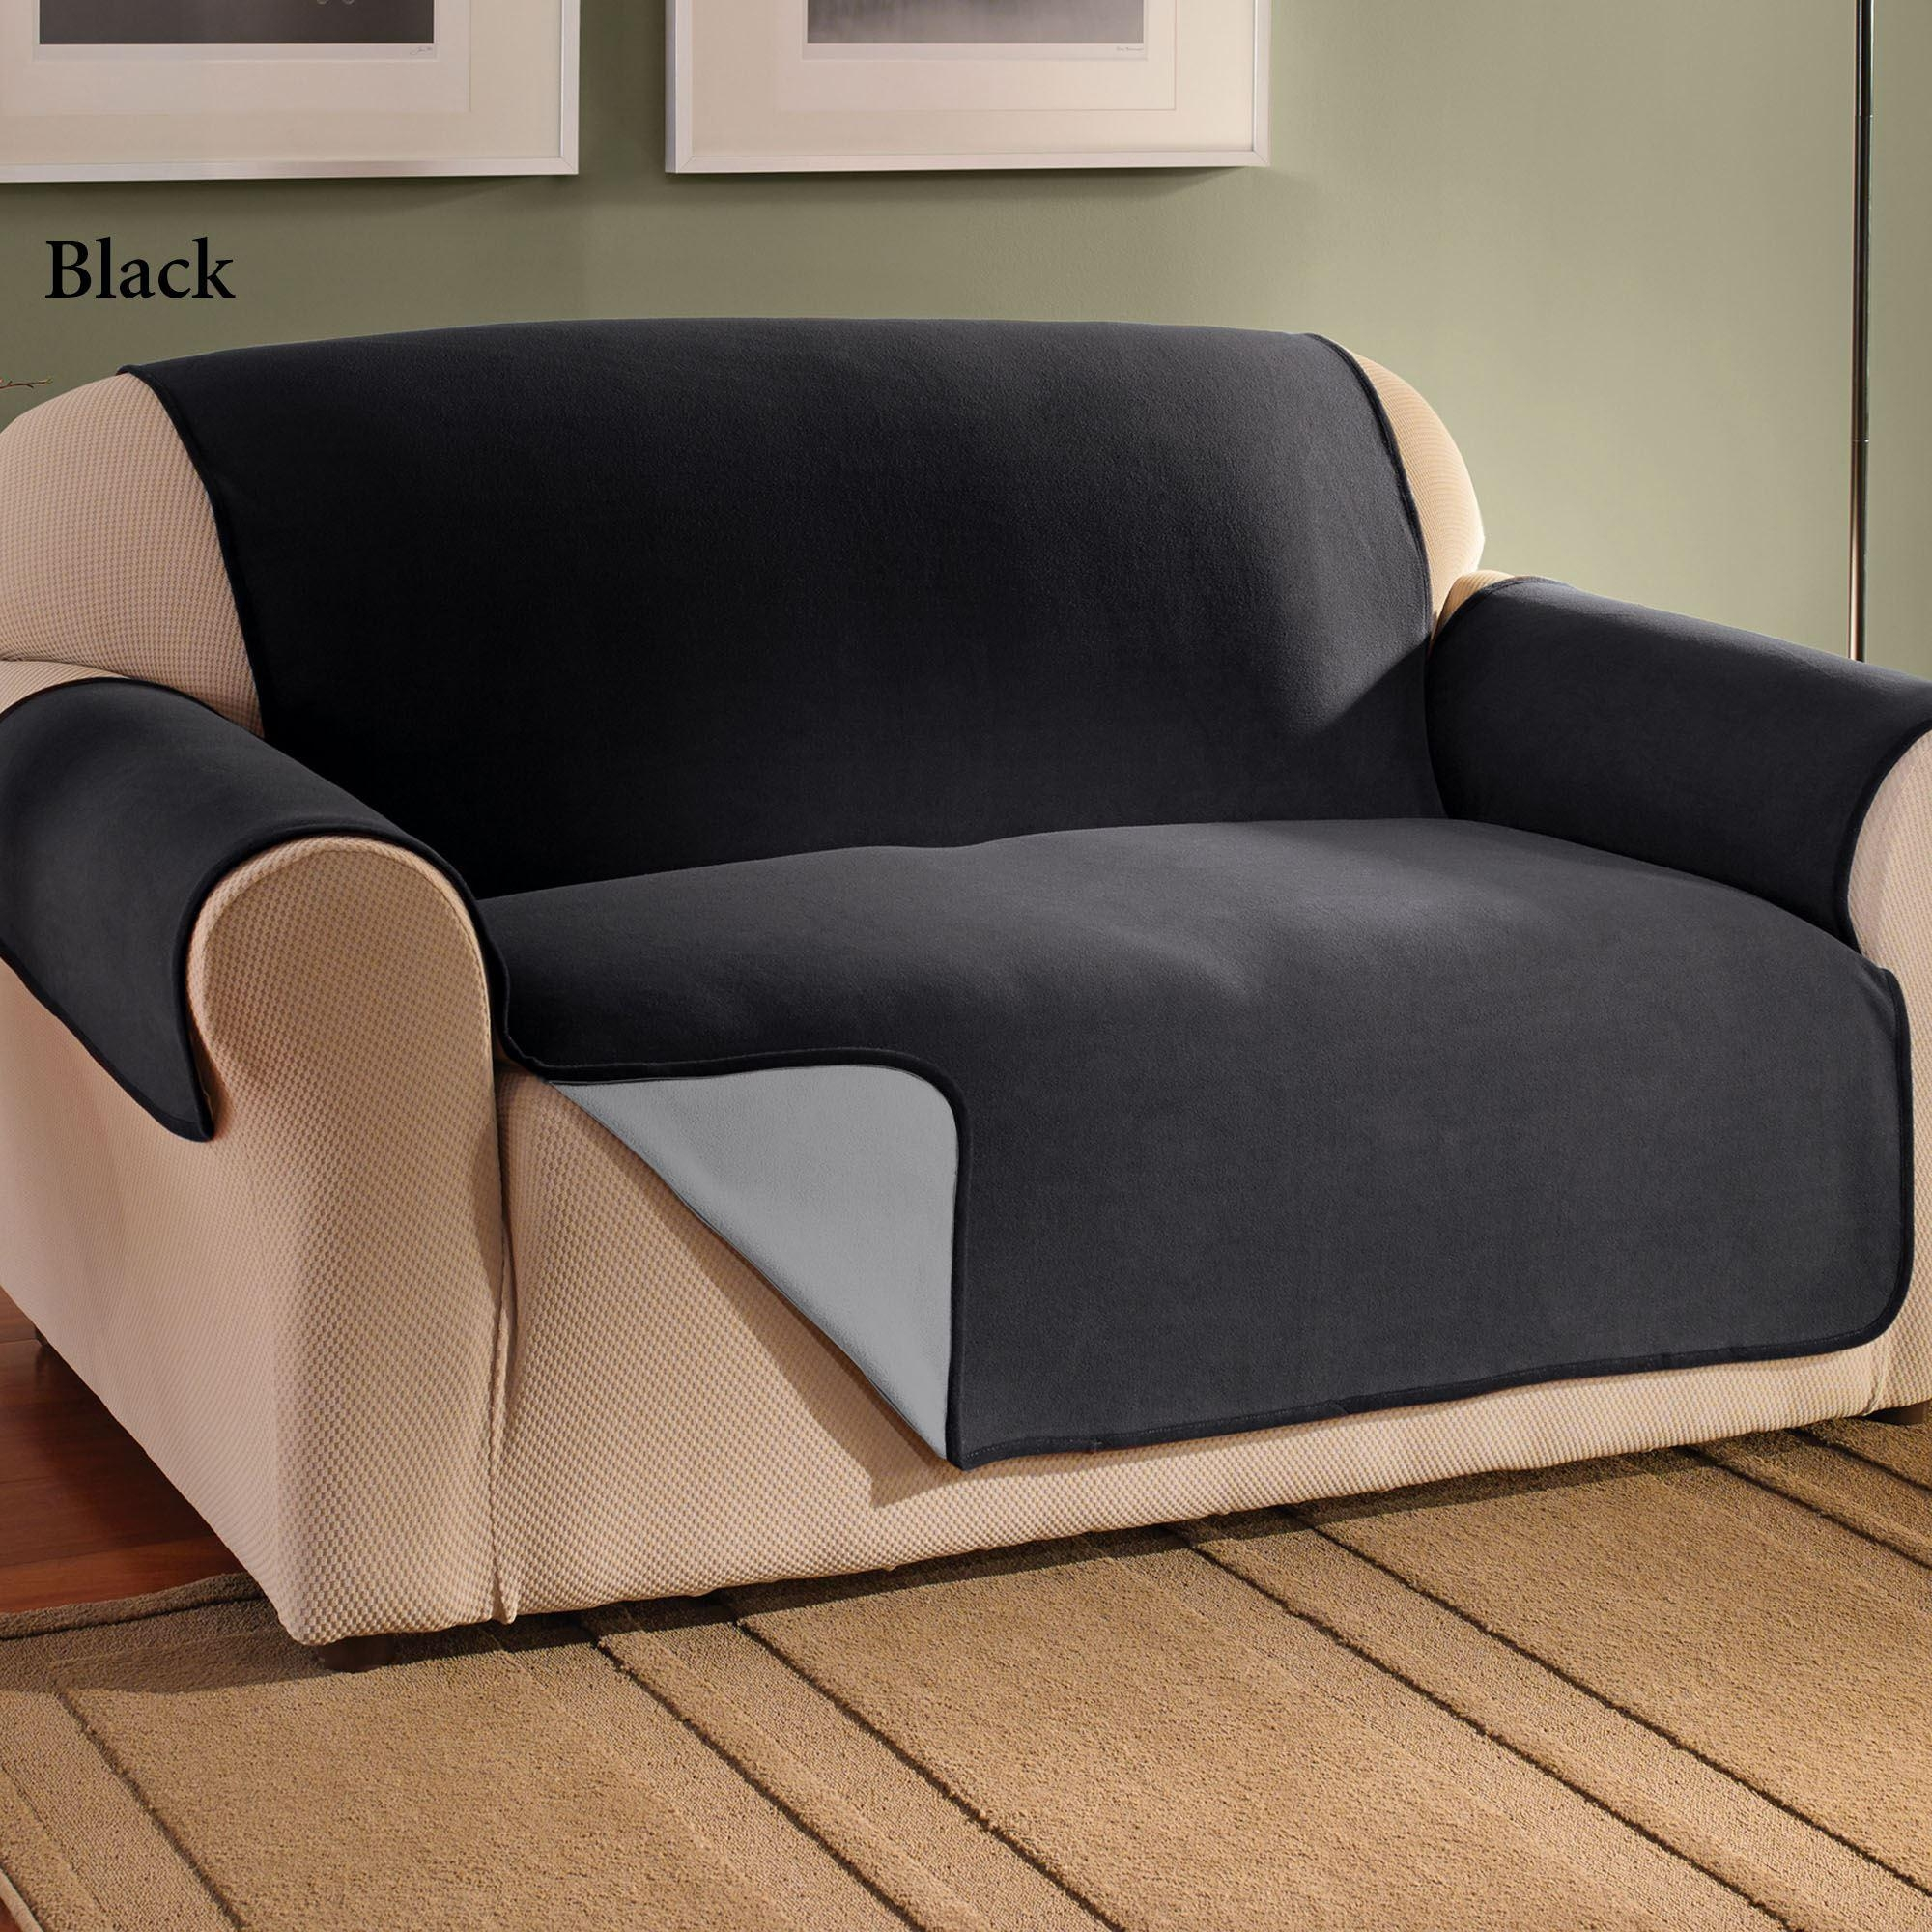 Grey Sofa Cover For Pets Throughout Black Slipcovers For Sofas (View 13 of 20)